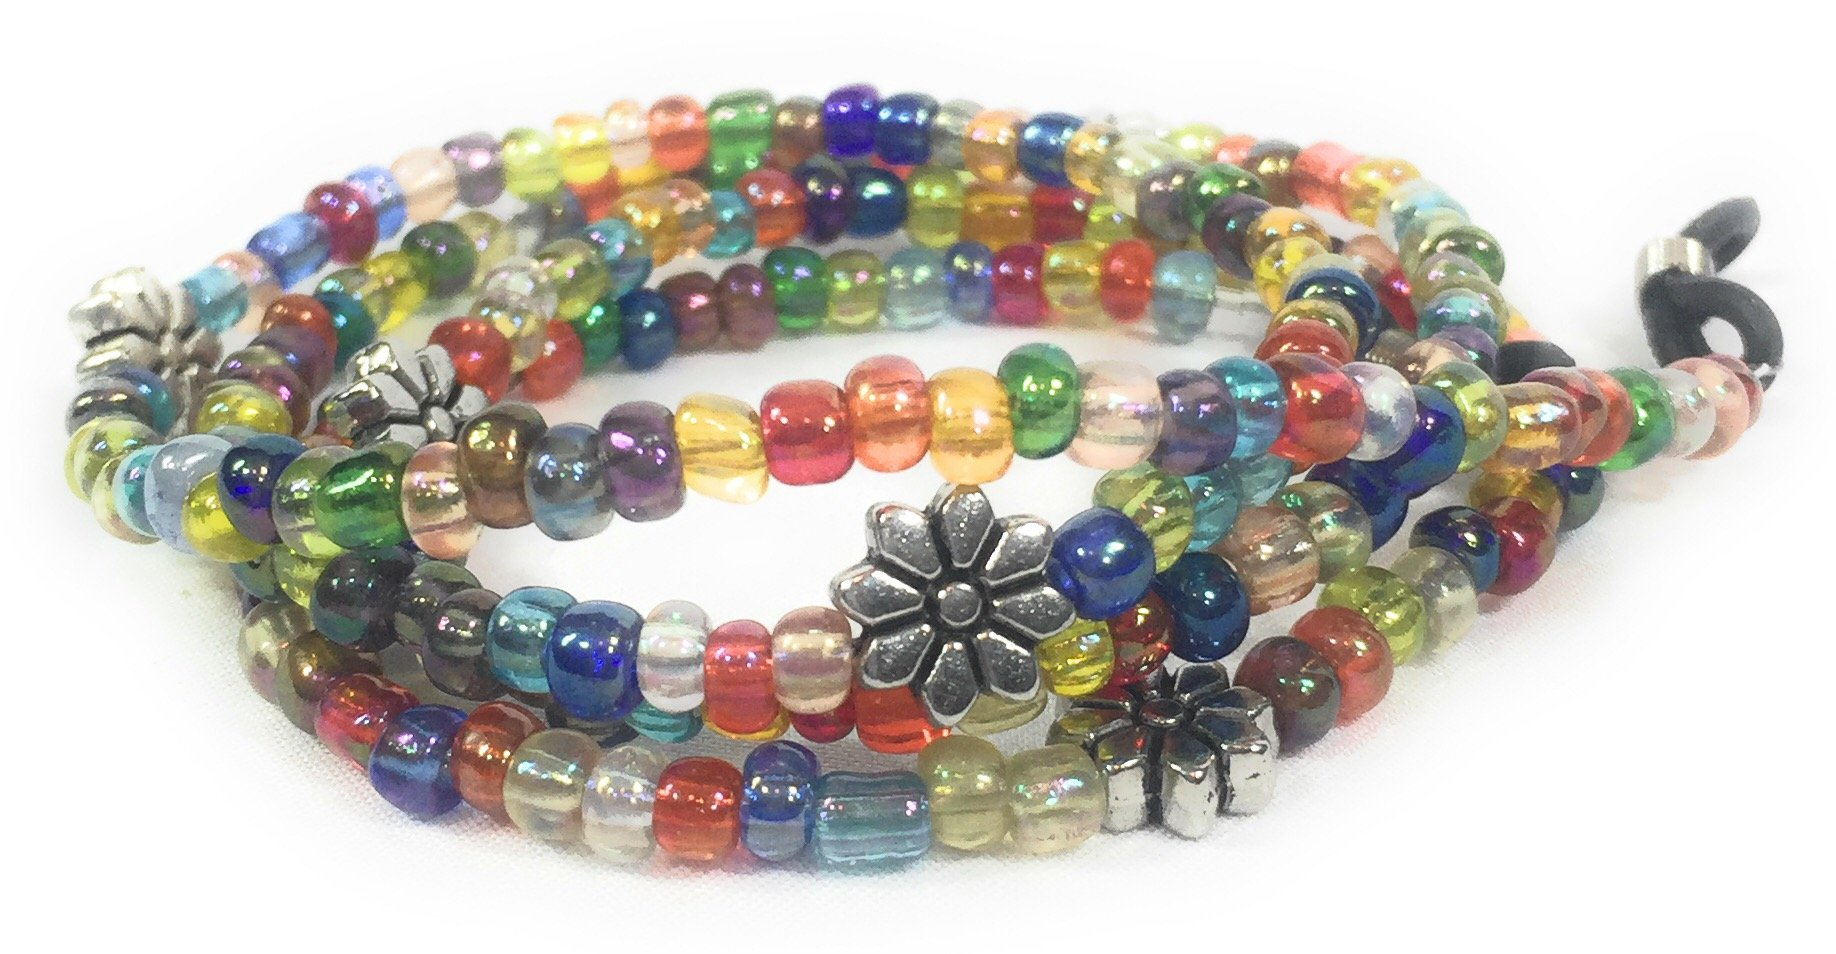 Multicolored and Flower Beaded Glasses Chain for Women - 28 Inches